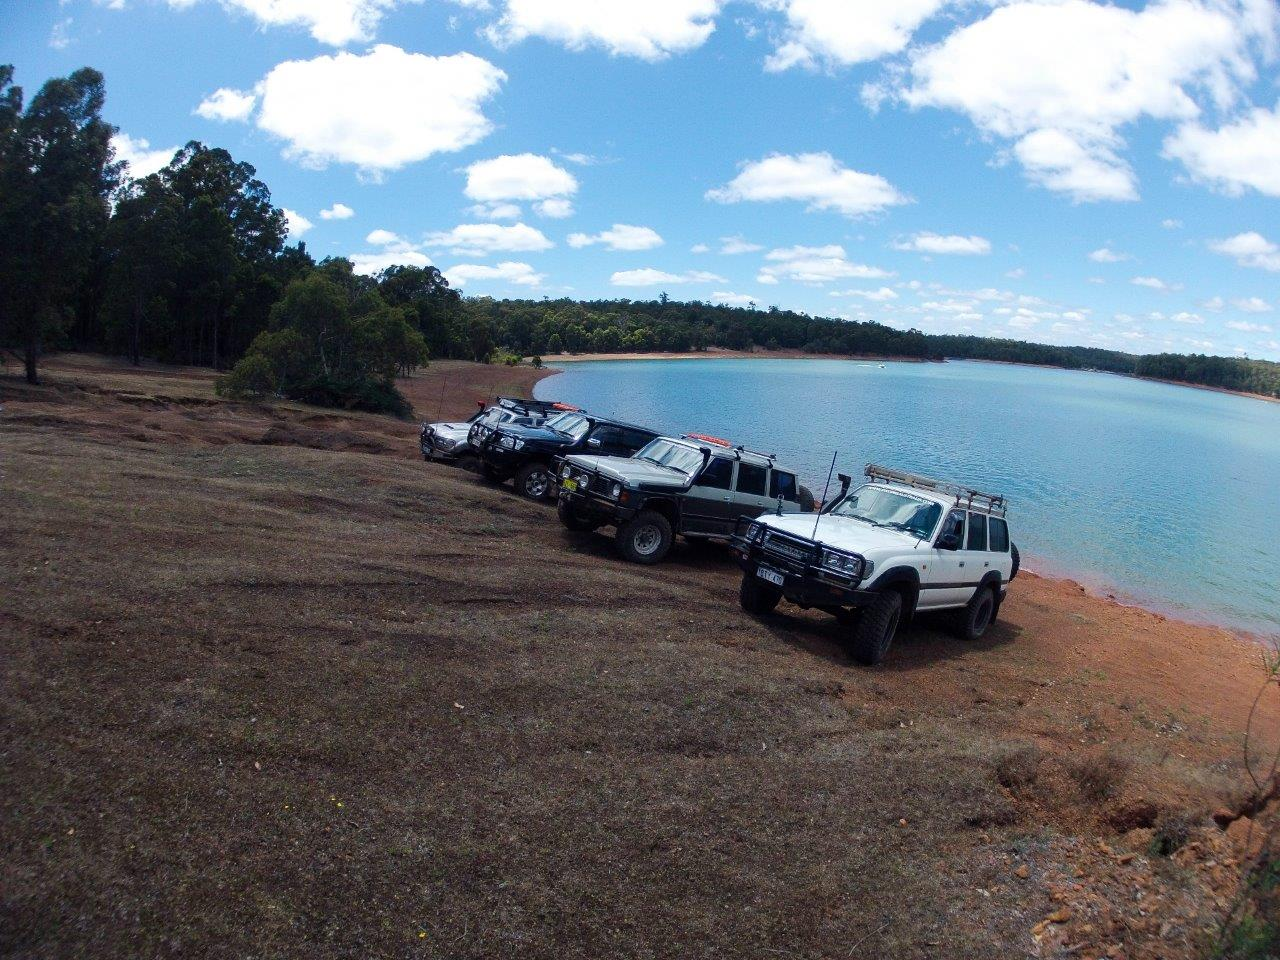 Our 4wds at Waroona